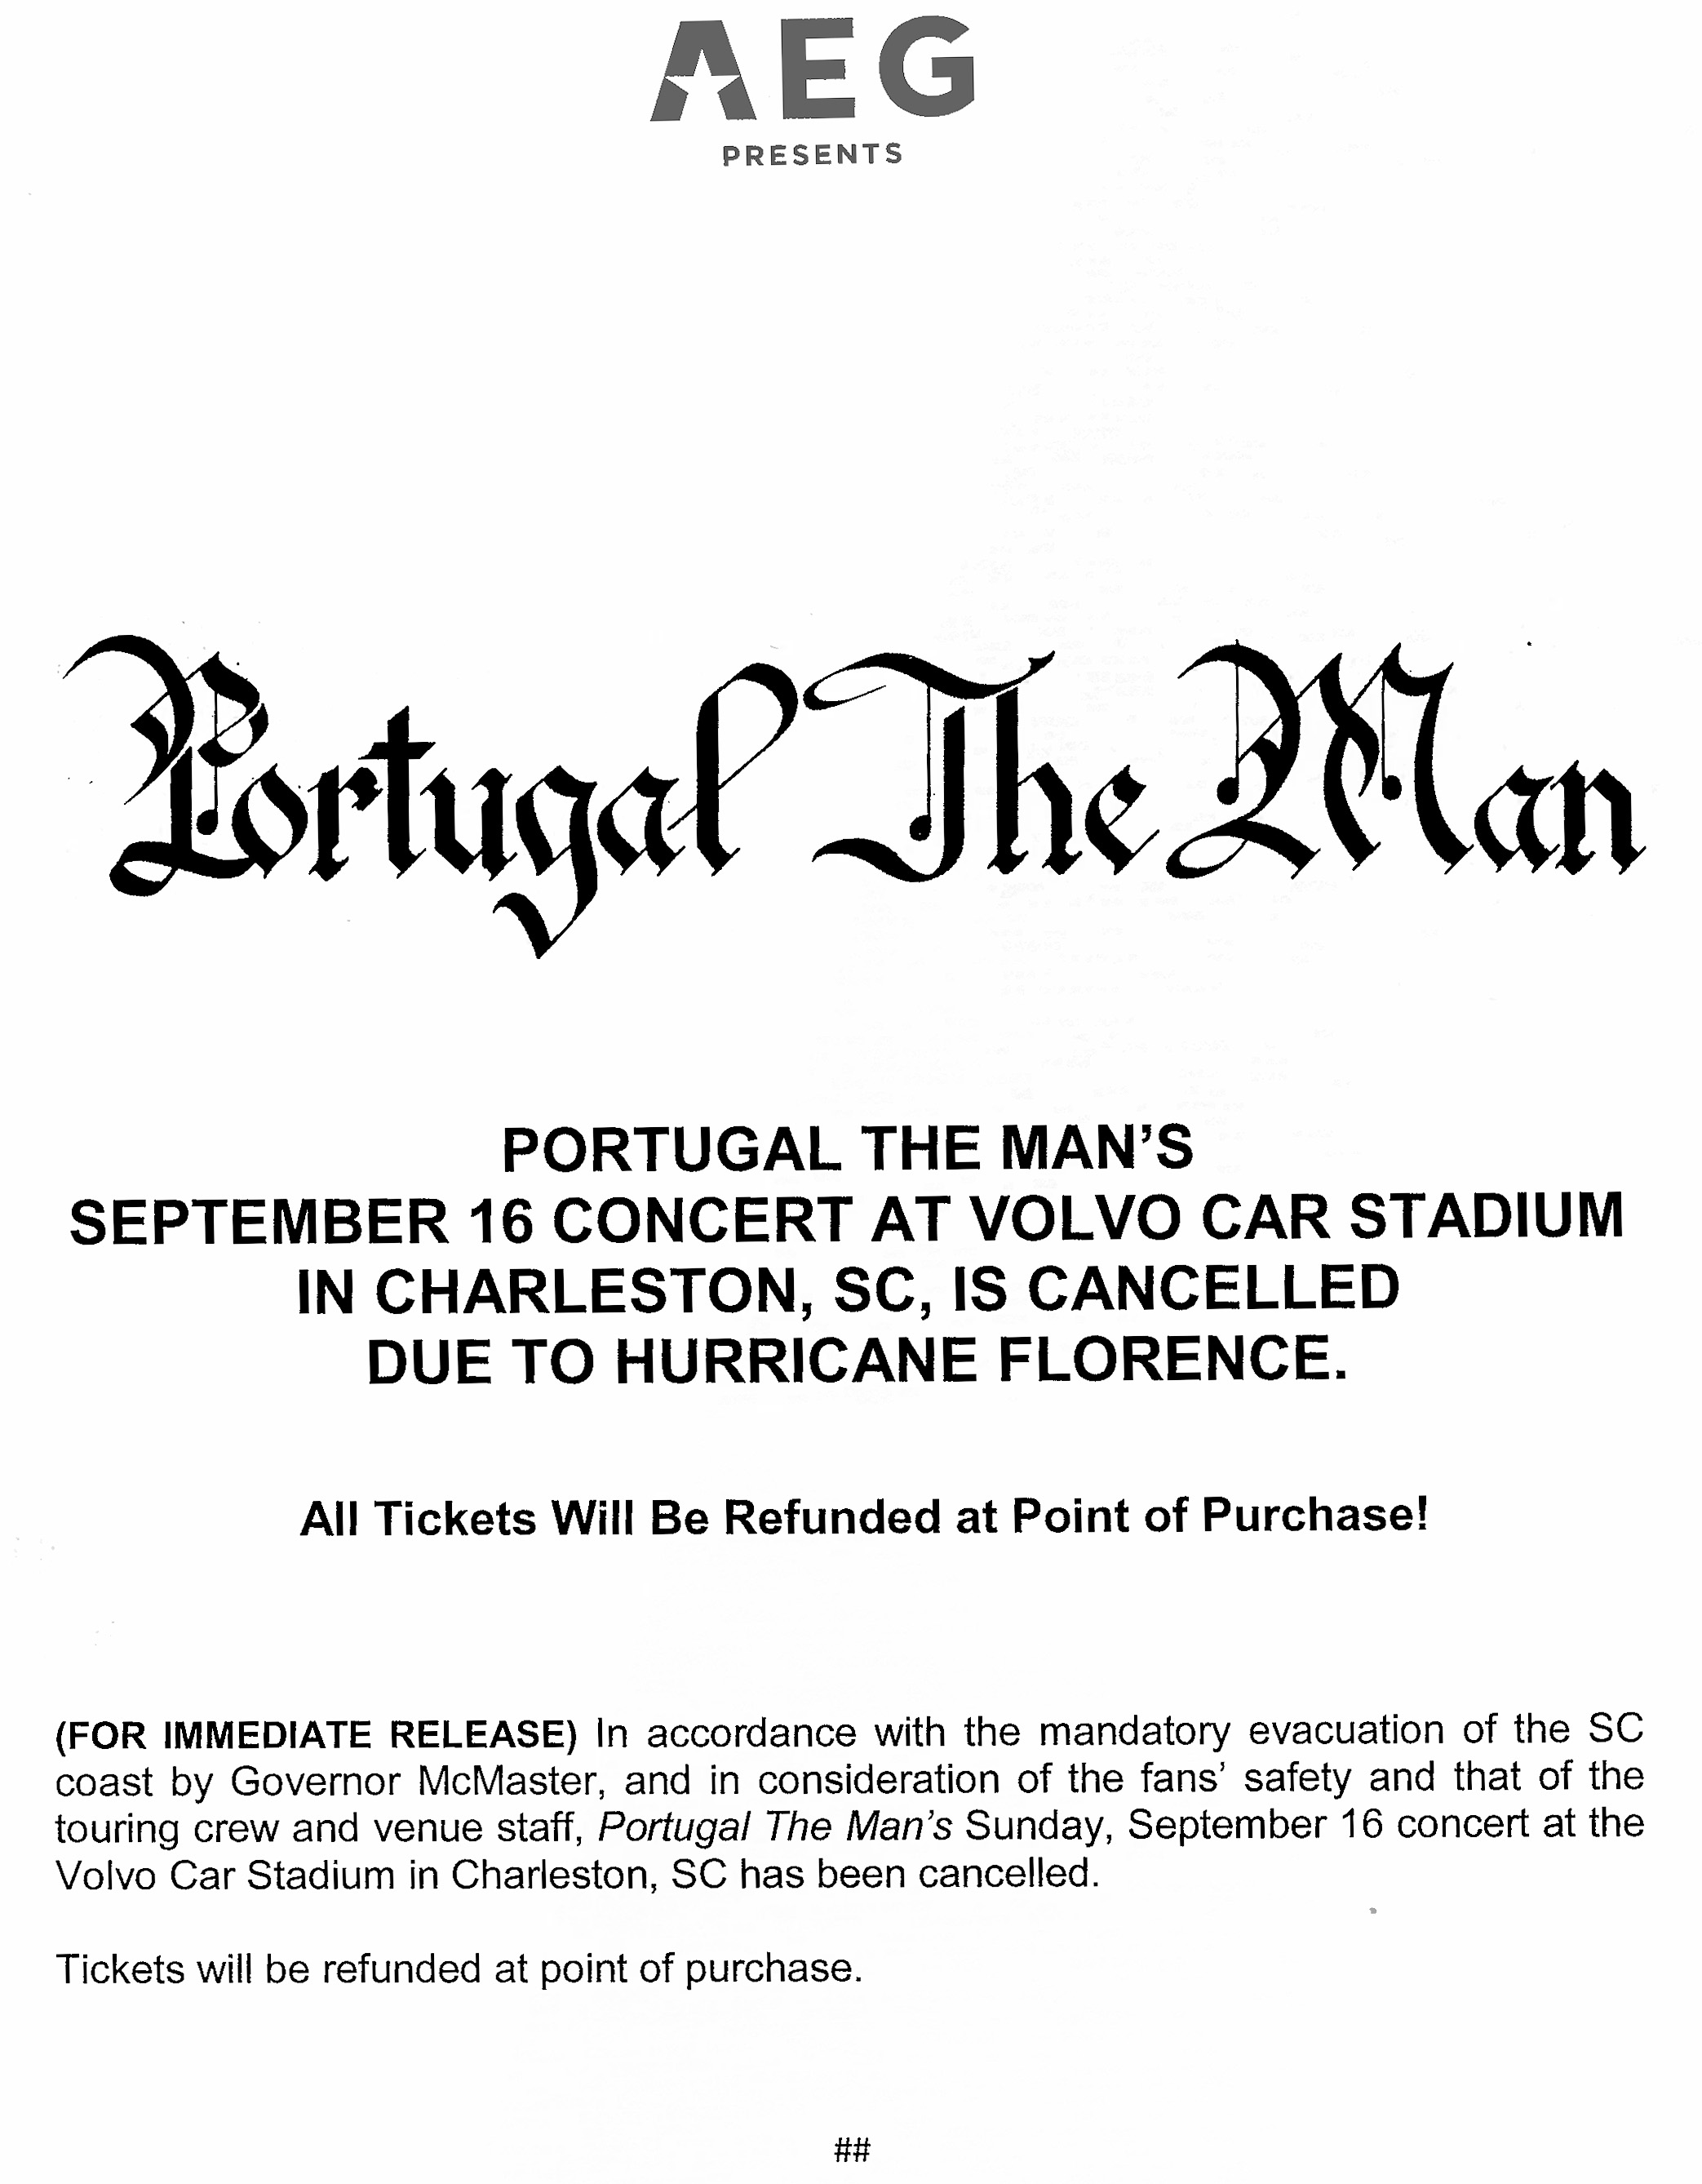 Cancelled Portugal The Man Concert Sept 16 At Volvo Car Stadium